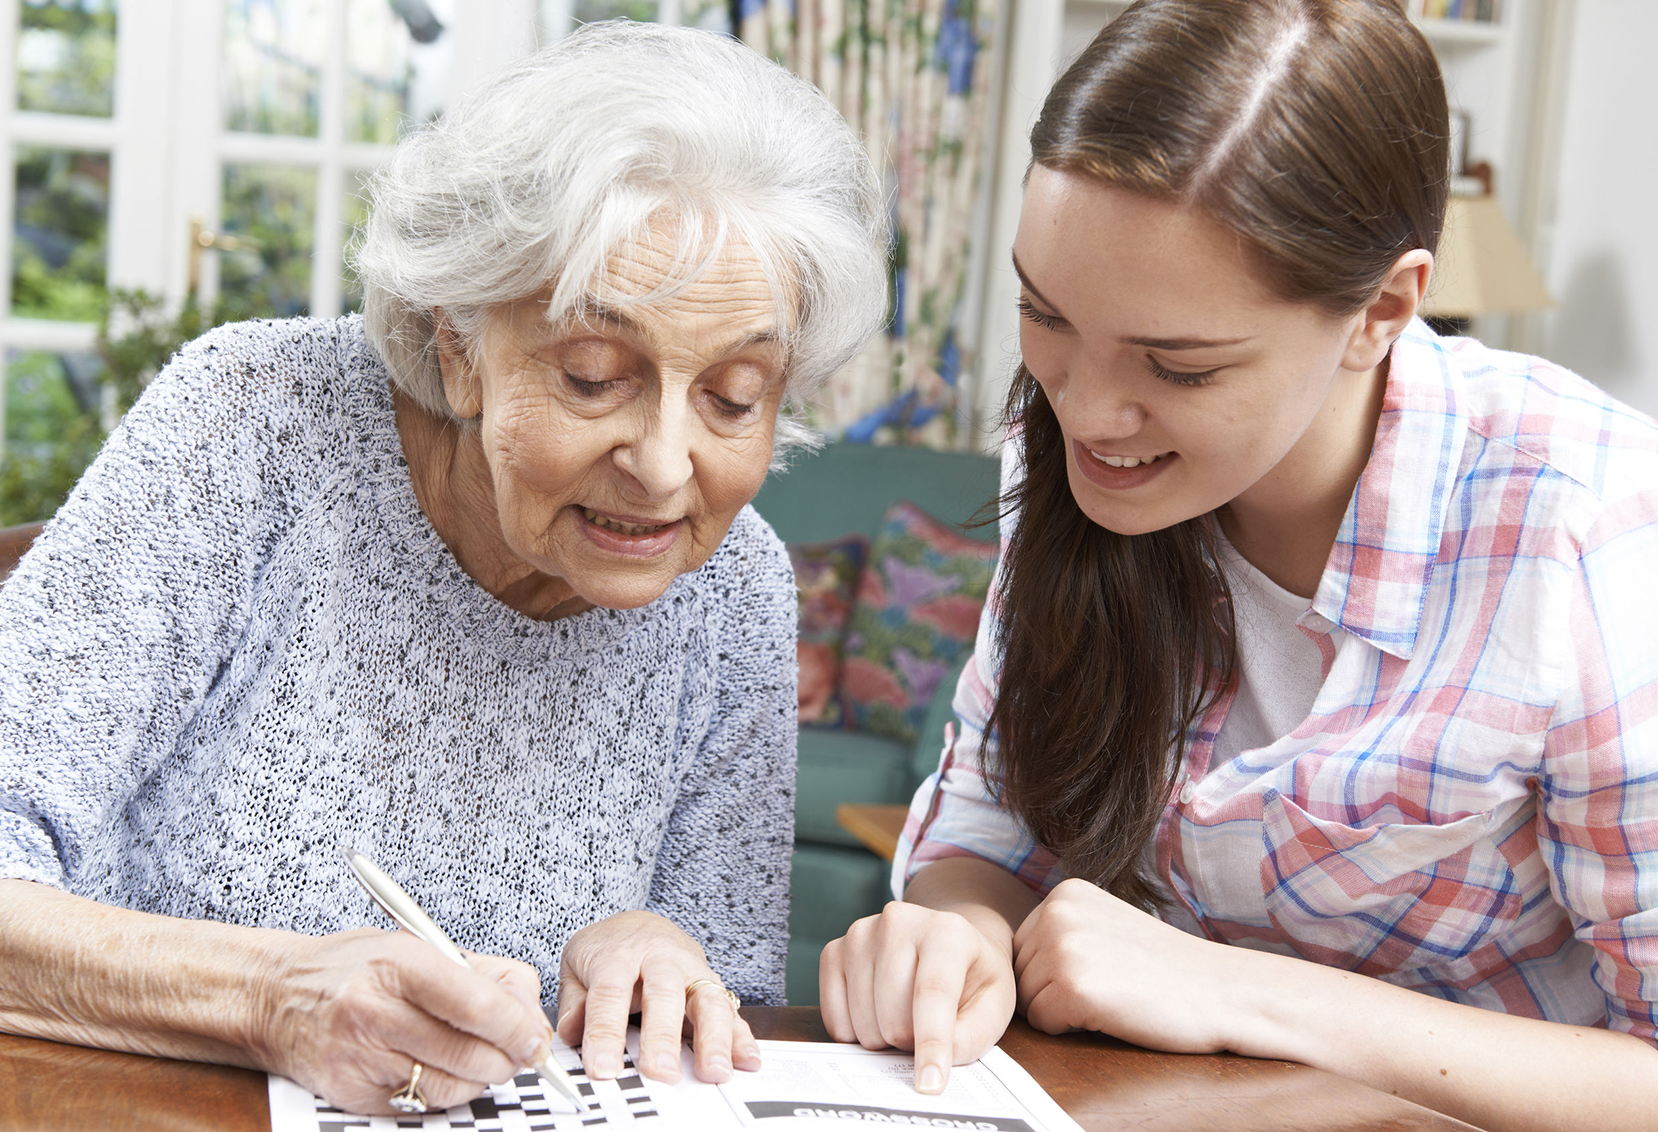 46634496 - Teenage Granddaughter Helping Grandmother With Crossword Puzzle